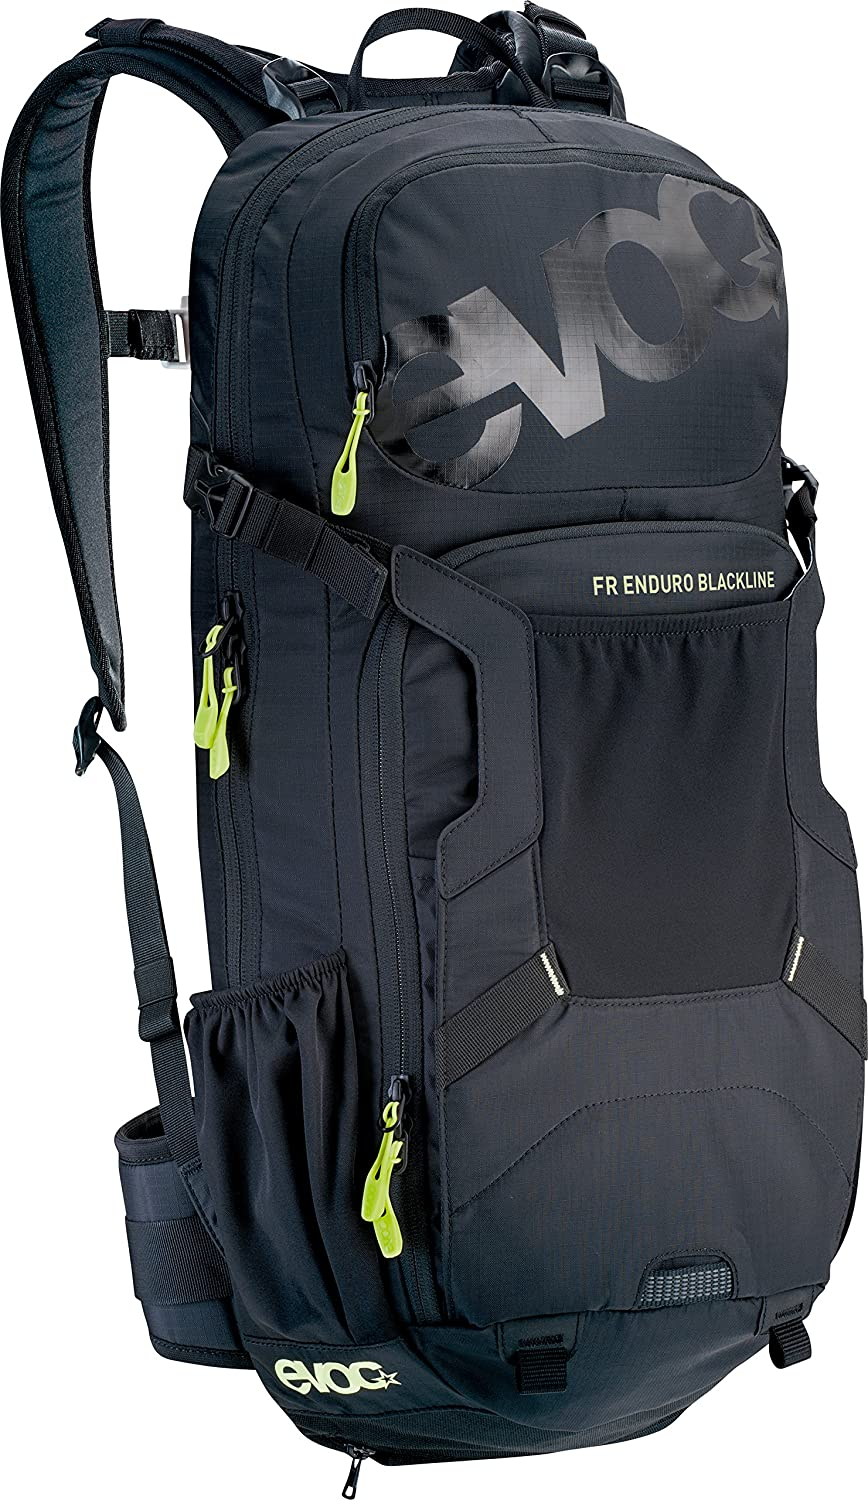 evoc FR Enduro Blackline Protector Hydration Pack Black, S